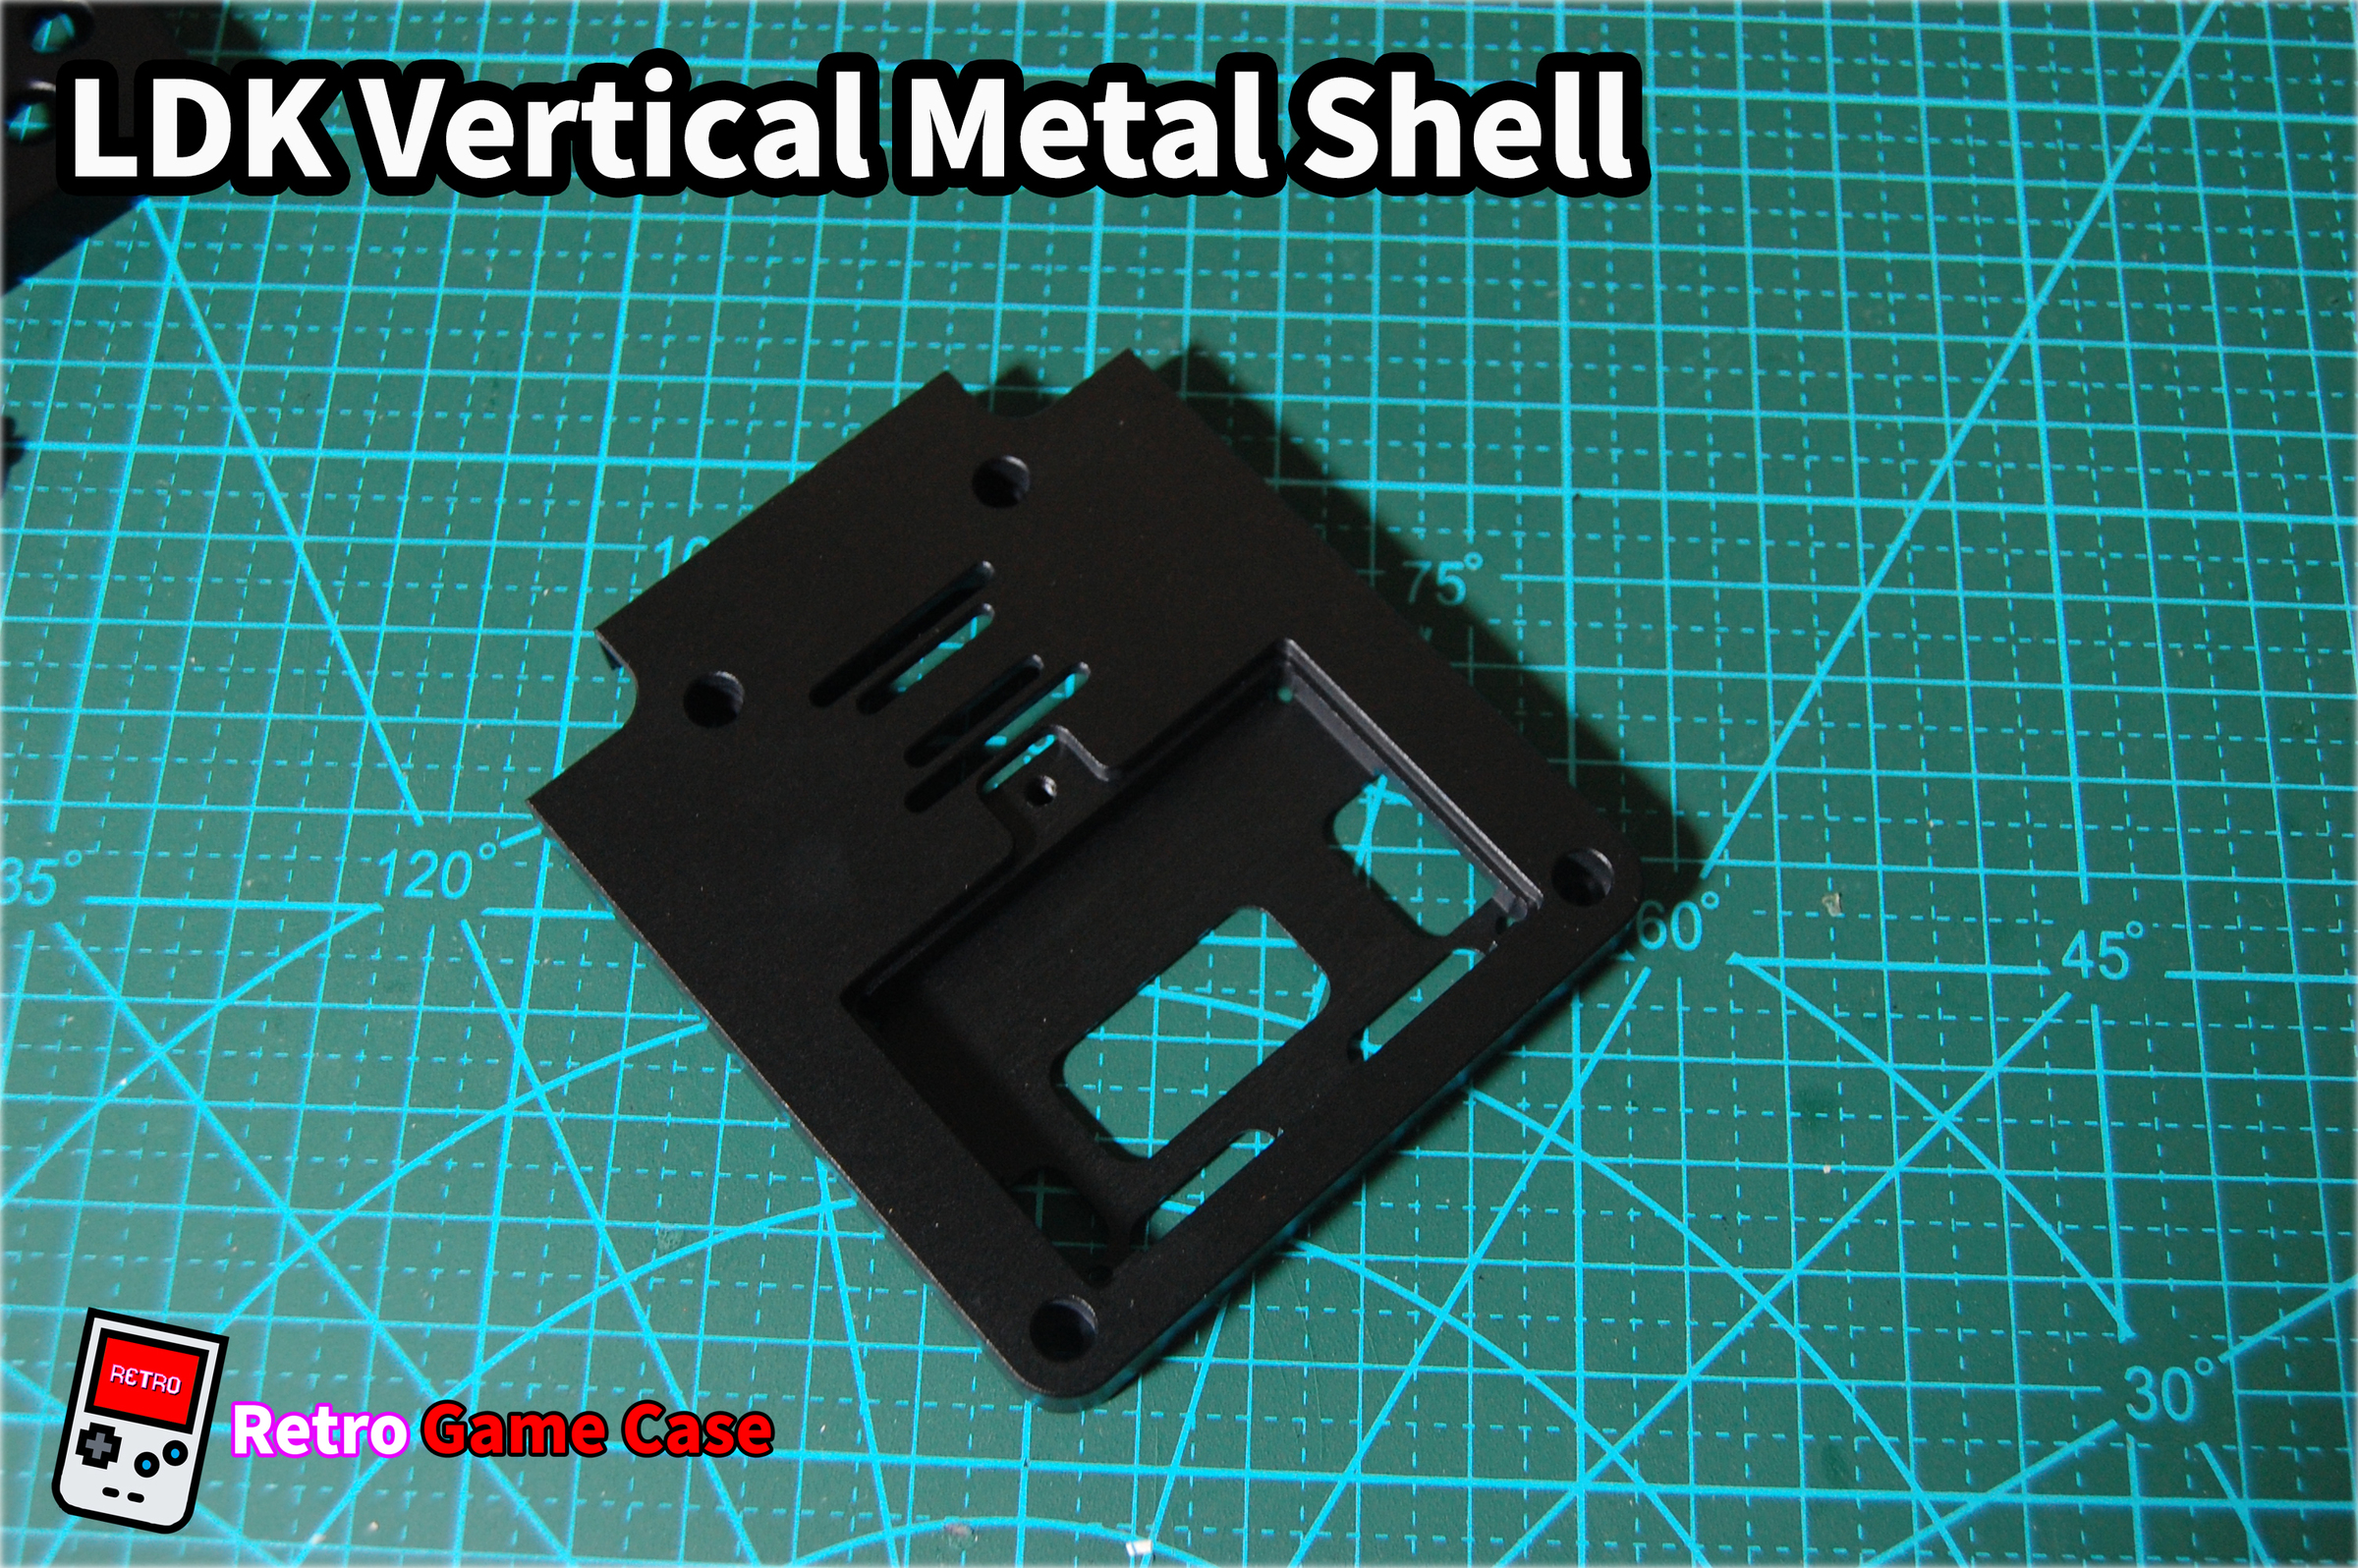 My_retro_game_case_ldk_Metal_shell_case_black_back.jpg